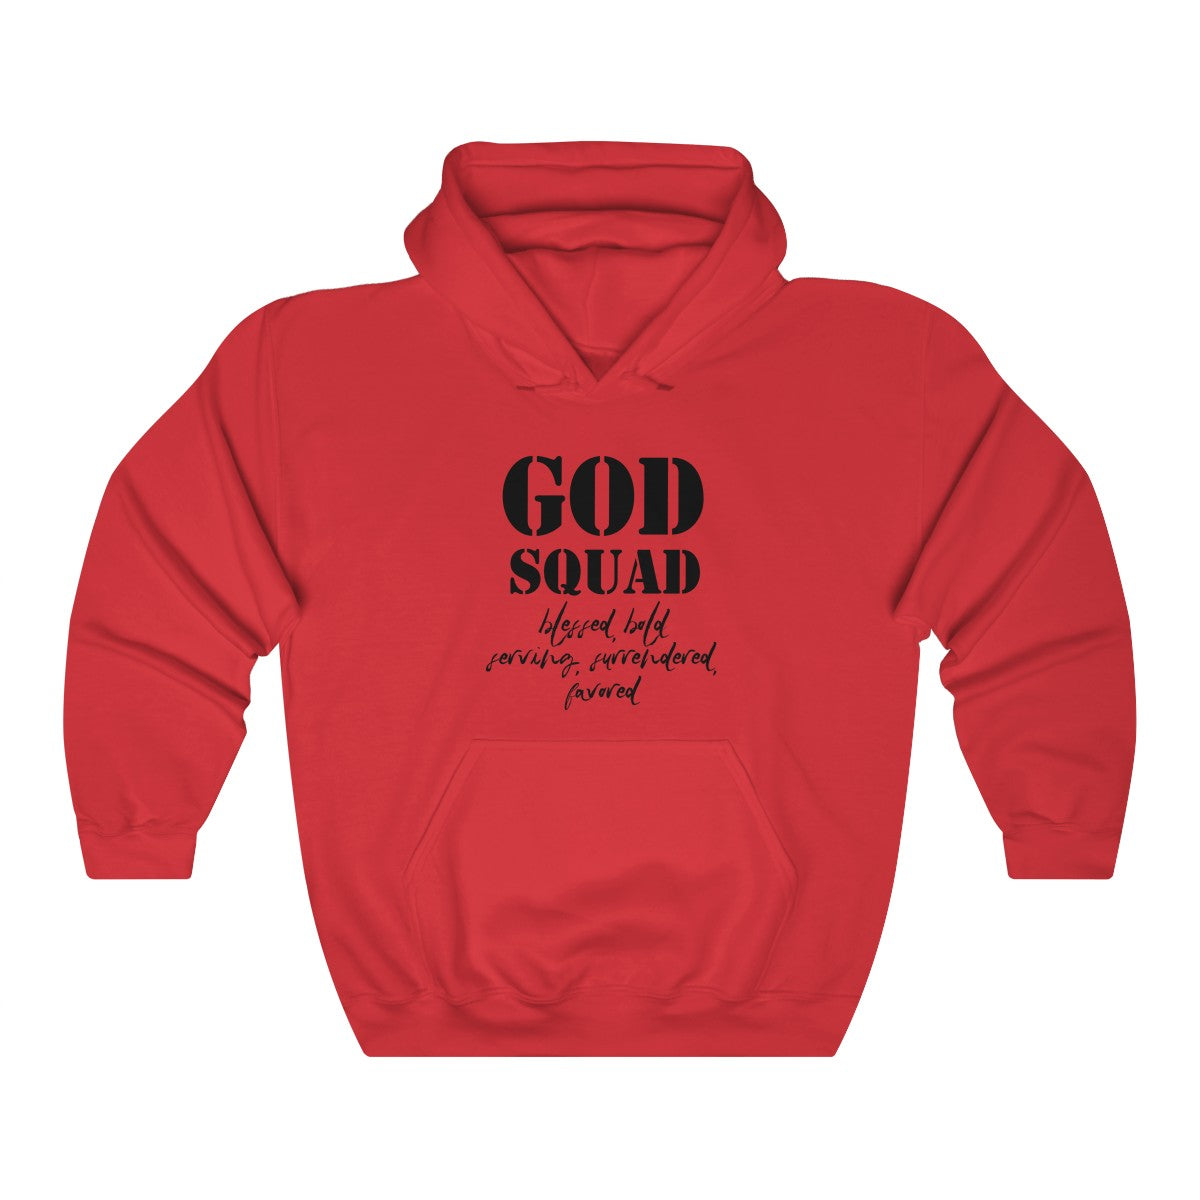 GOD SQUAD Unisex Heavy Blend™ Hooded Sweatshirt S to 5X - skyrockettees